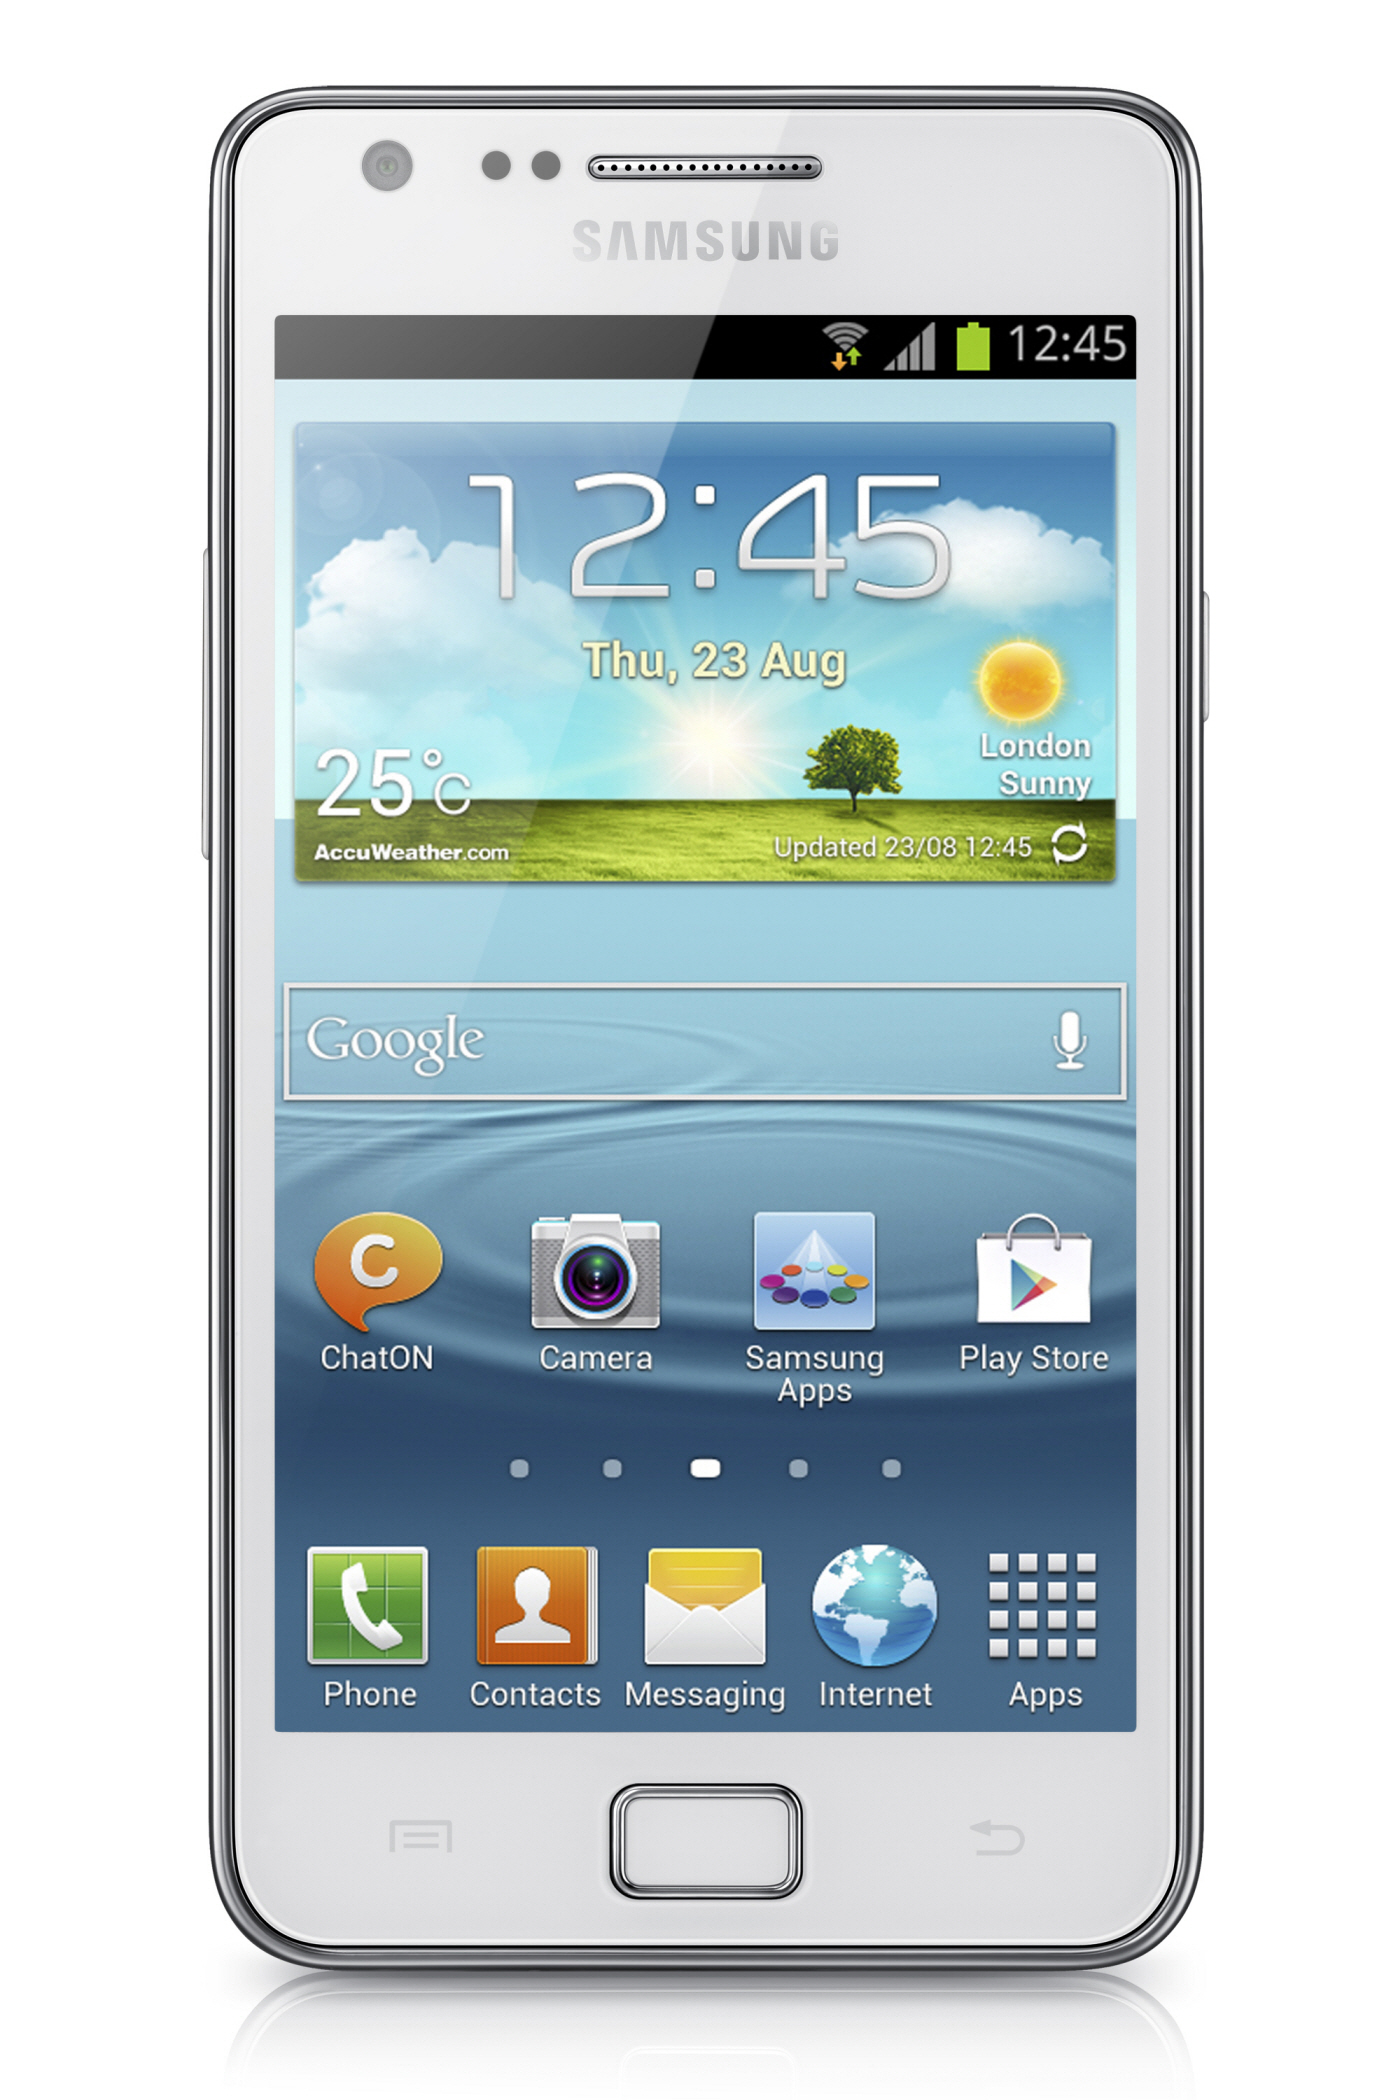 Samsung Galaxy S II Plus – Android 4.1 on a dual-core 1.2GHz